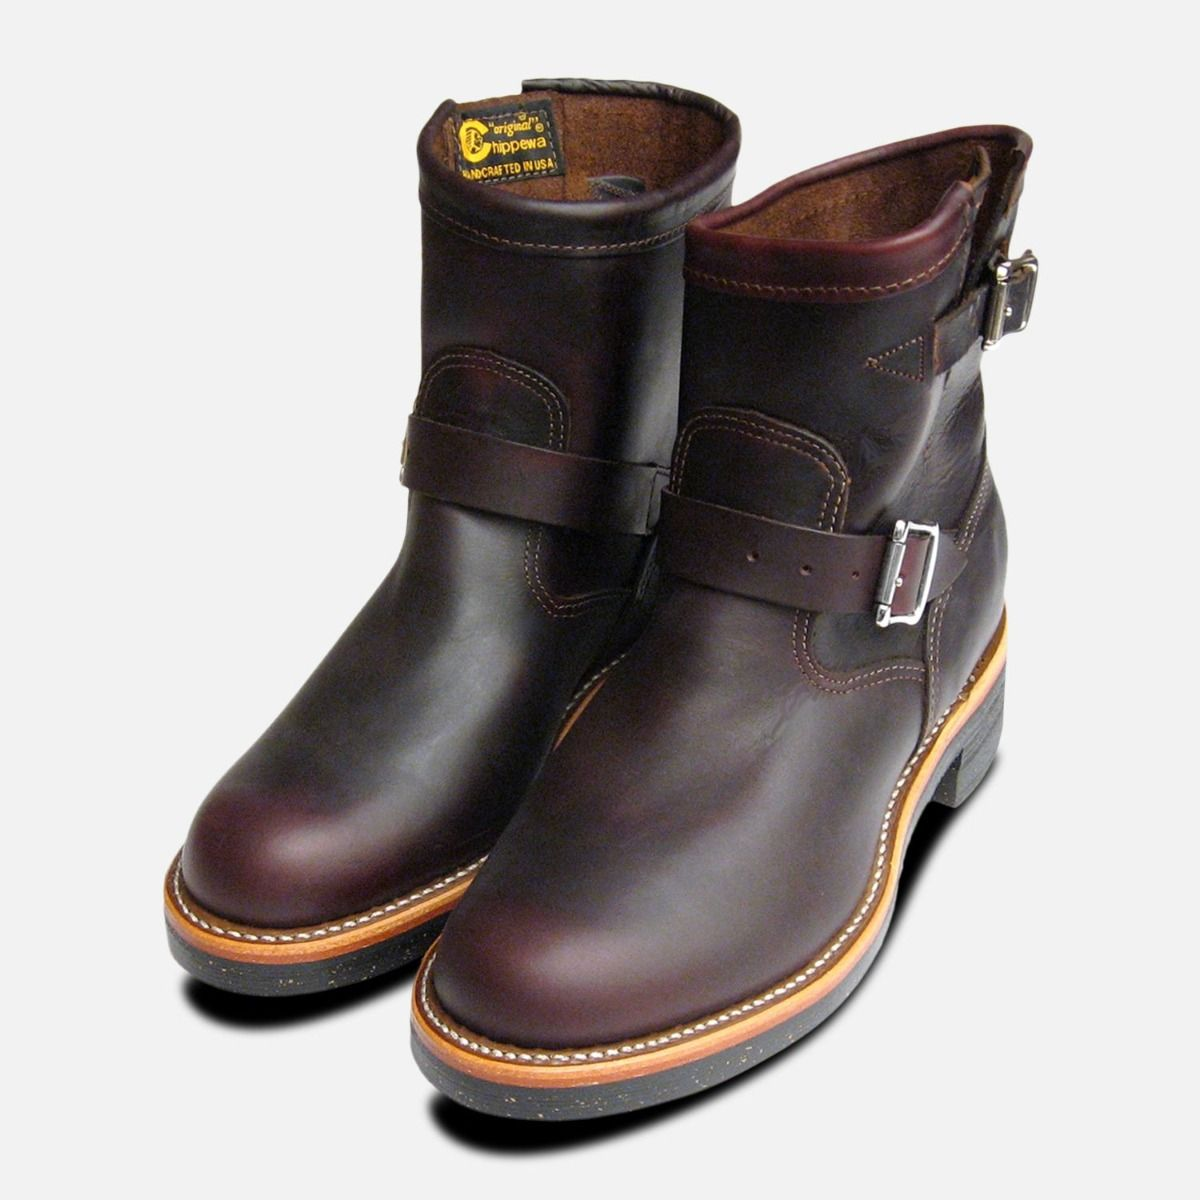 4197da54cf3 Chippewa Cordovan Oxblood Mens Logger Boots with Vibram Sole